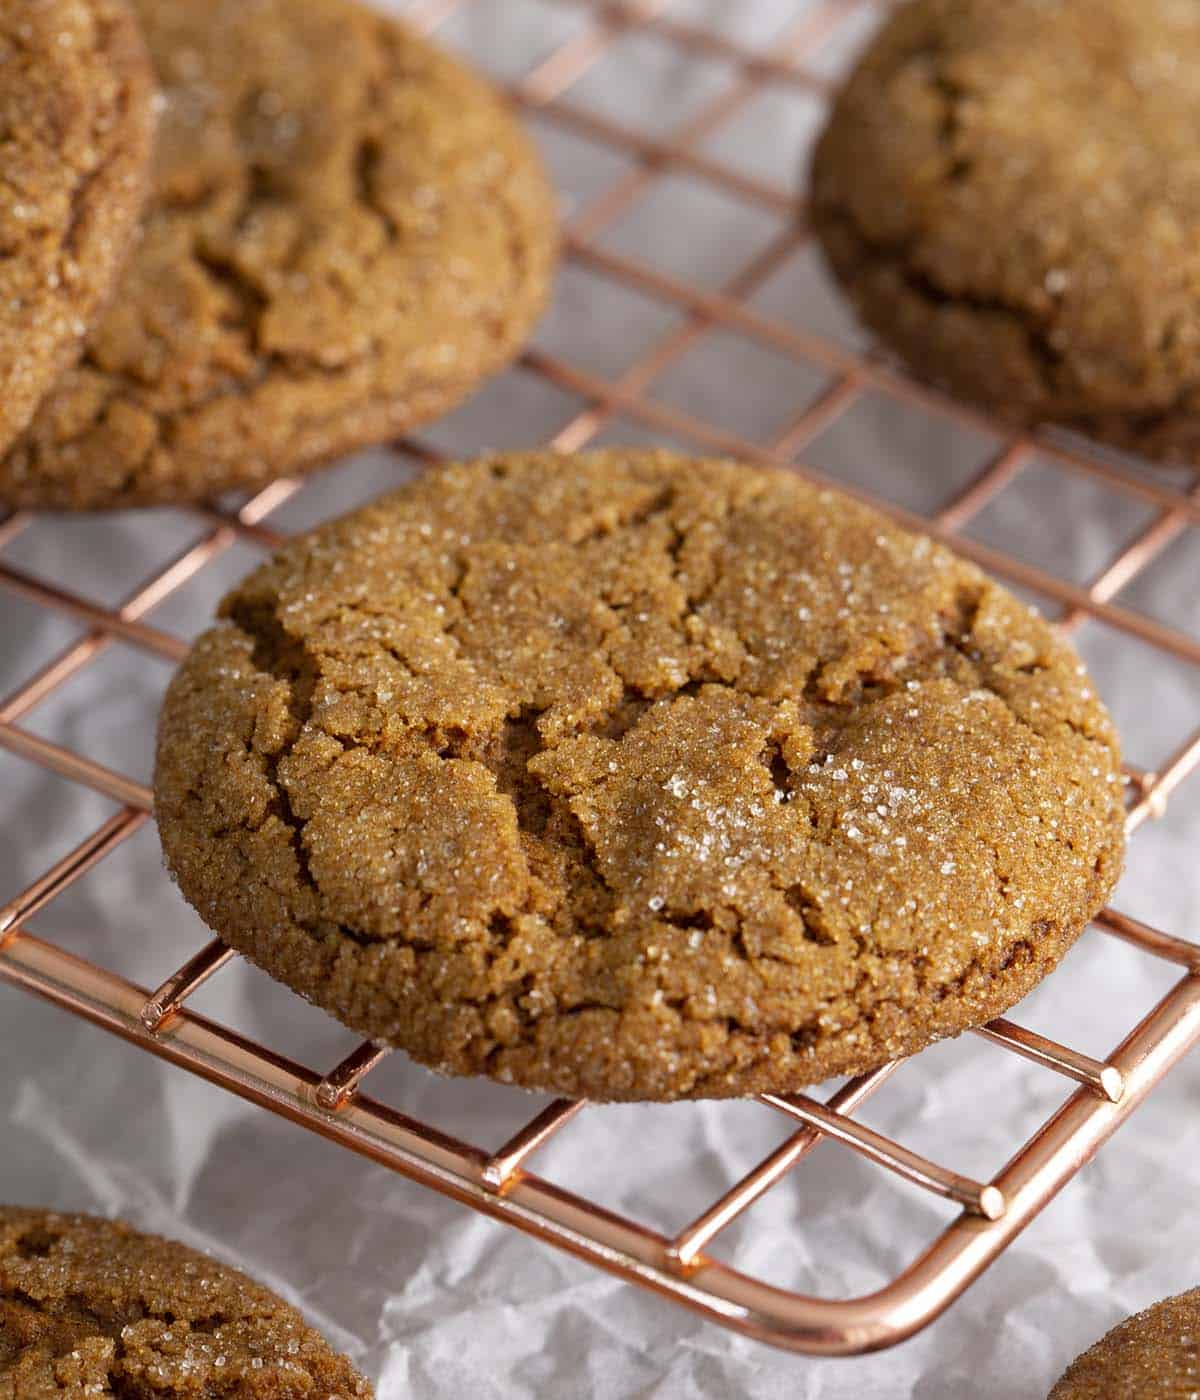 Molasses cookies on a copper cooling rack.